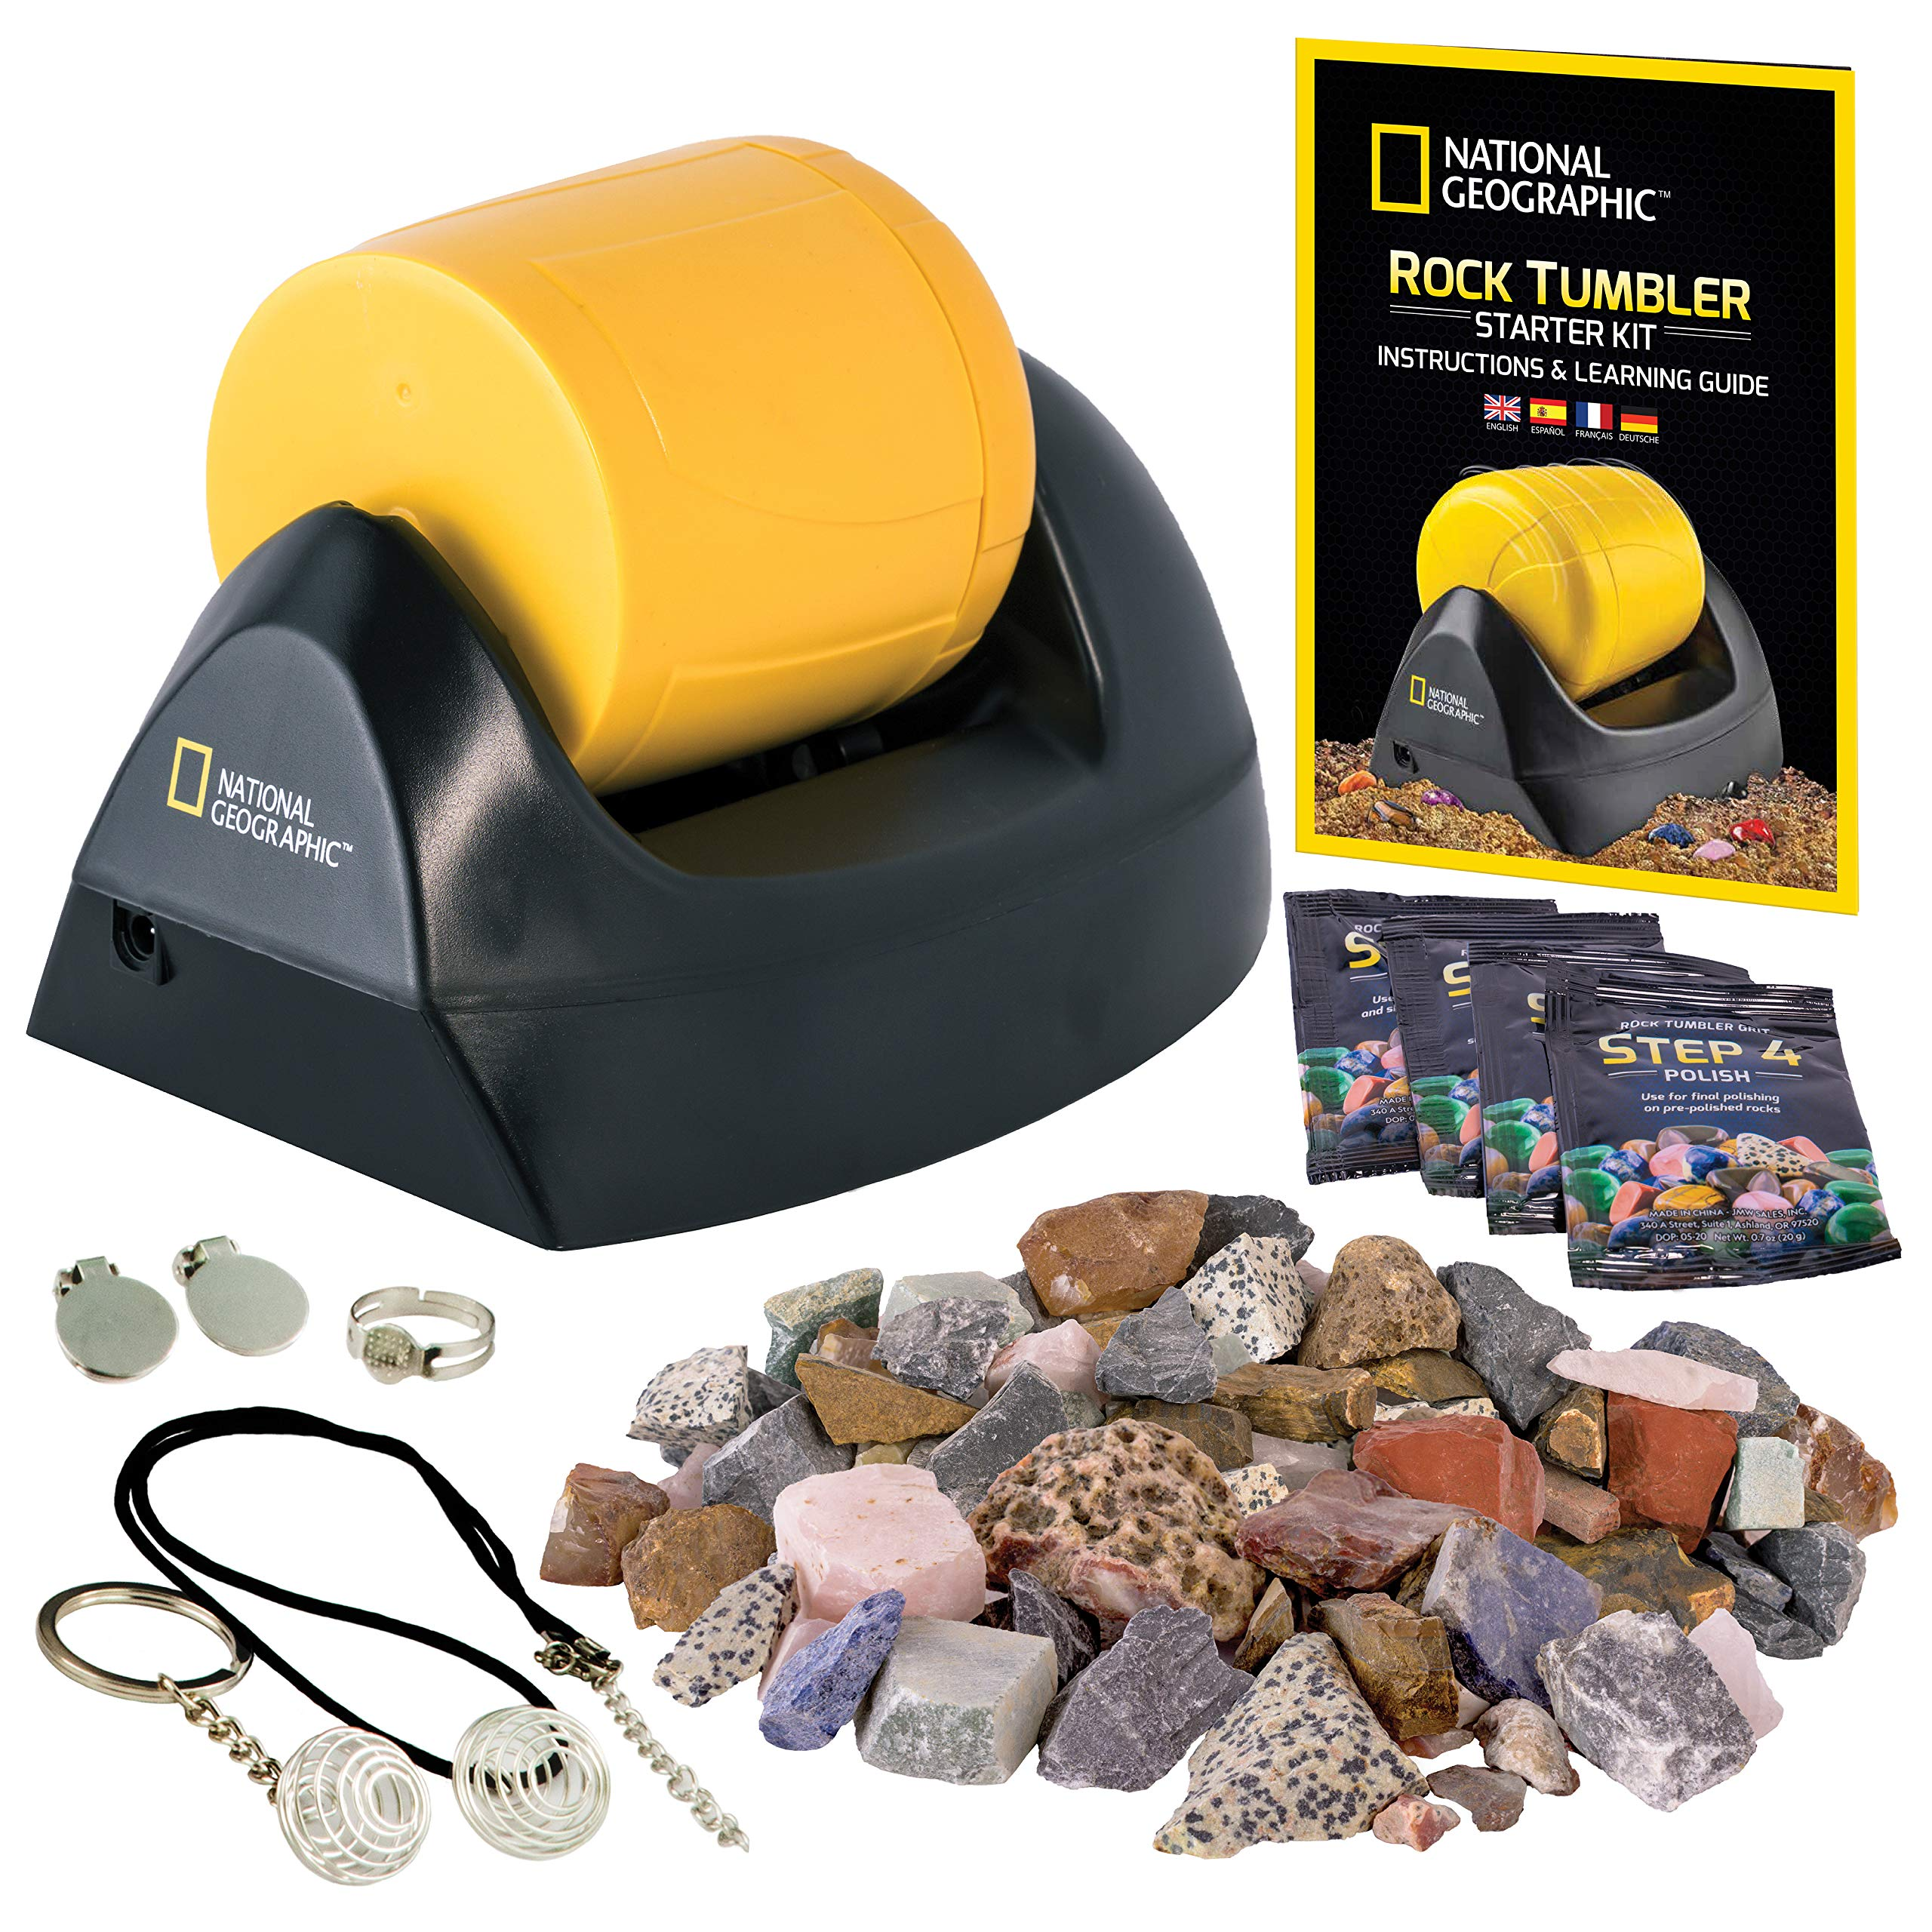 GemFoam Polishing Media Great STEM Science Kit Jewelry Fastenings and Detailed Learning Guide Includes Rough Gemstones 4 Polishing Grits NATIONAL GEOGRAPHIC Hobby Rock Tumbler Kit